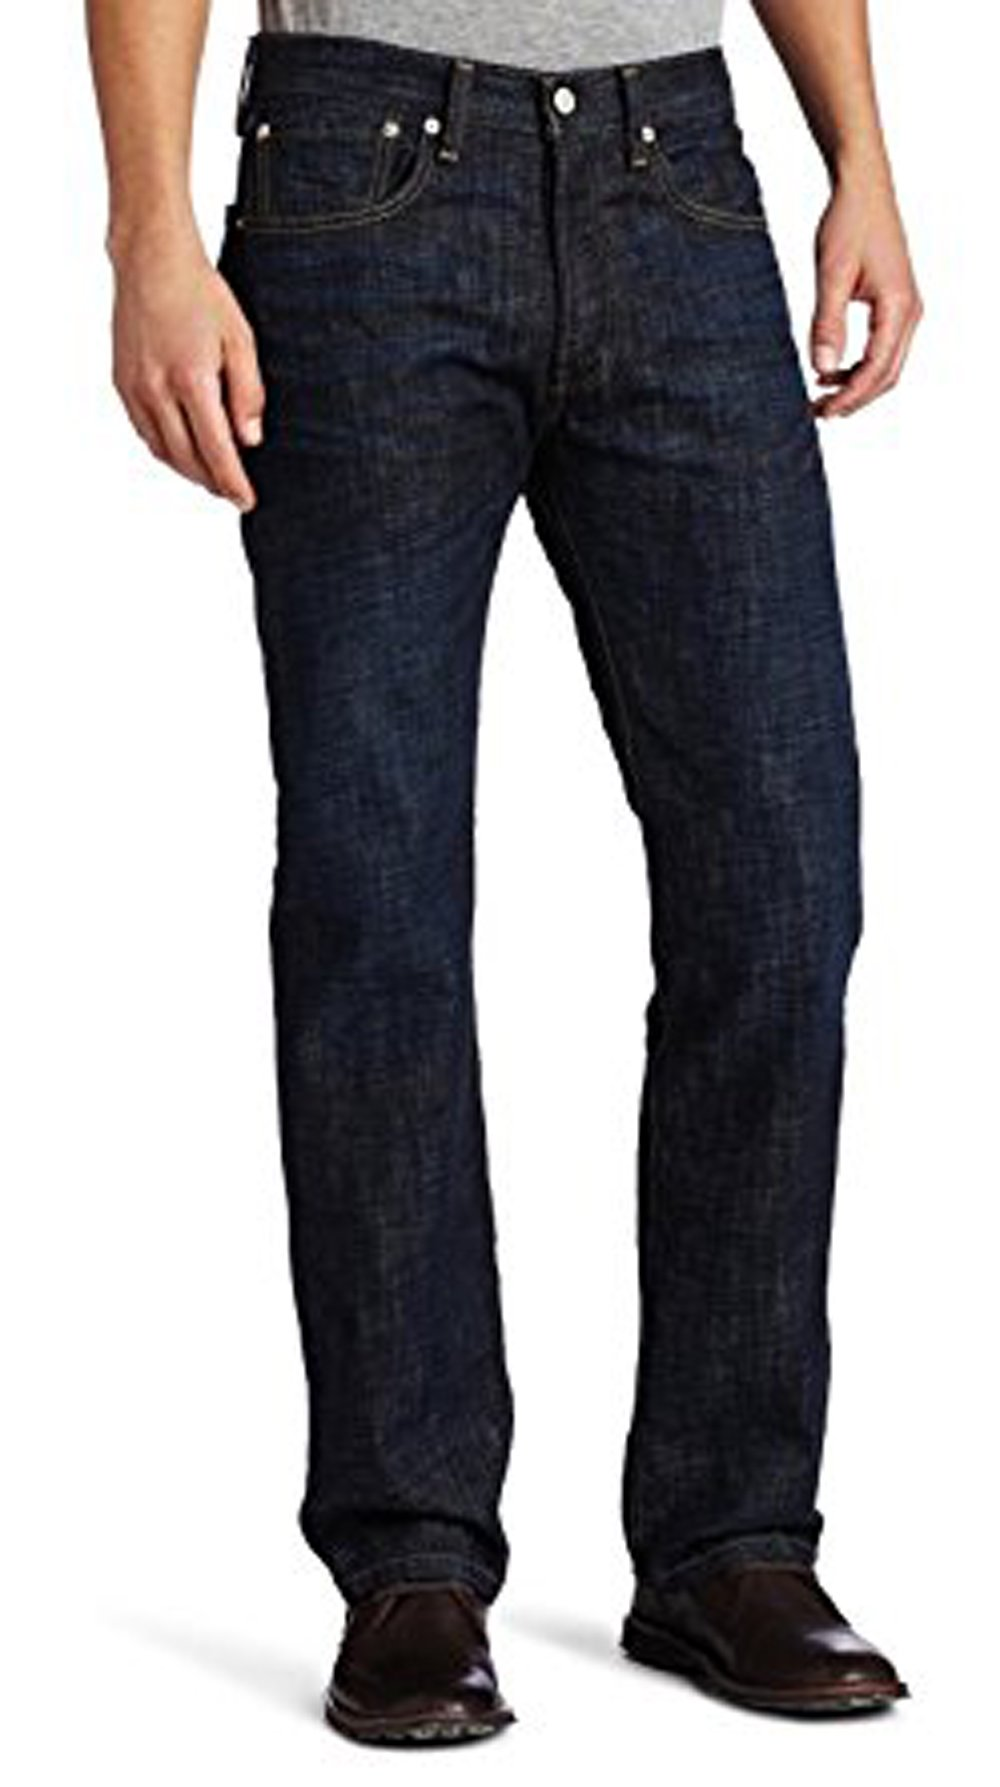 Levi's Men's 501 Original Fit Jean, Tidal Blue, 29x34